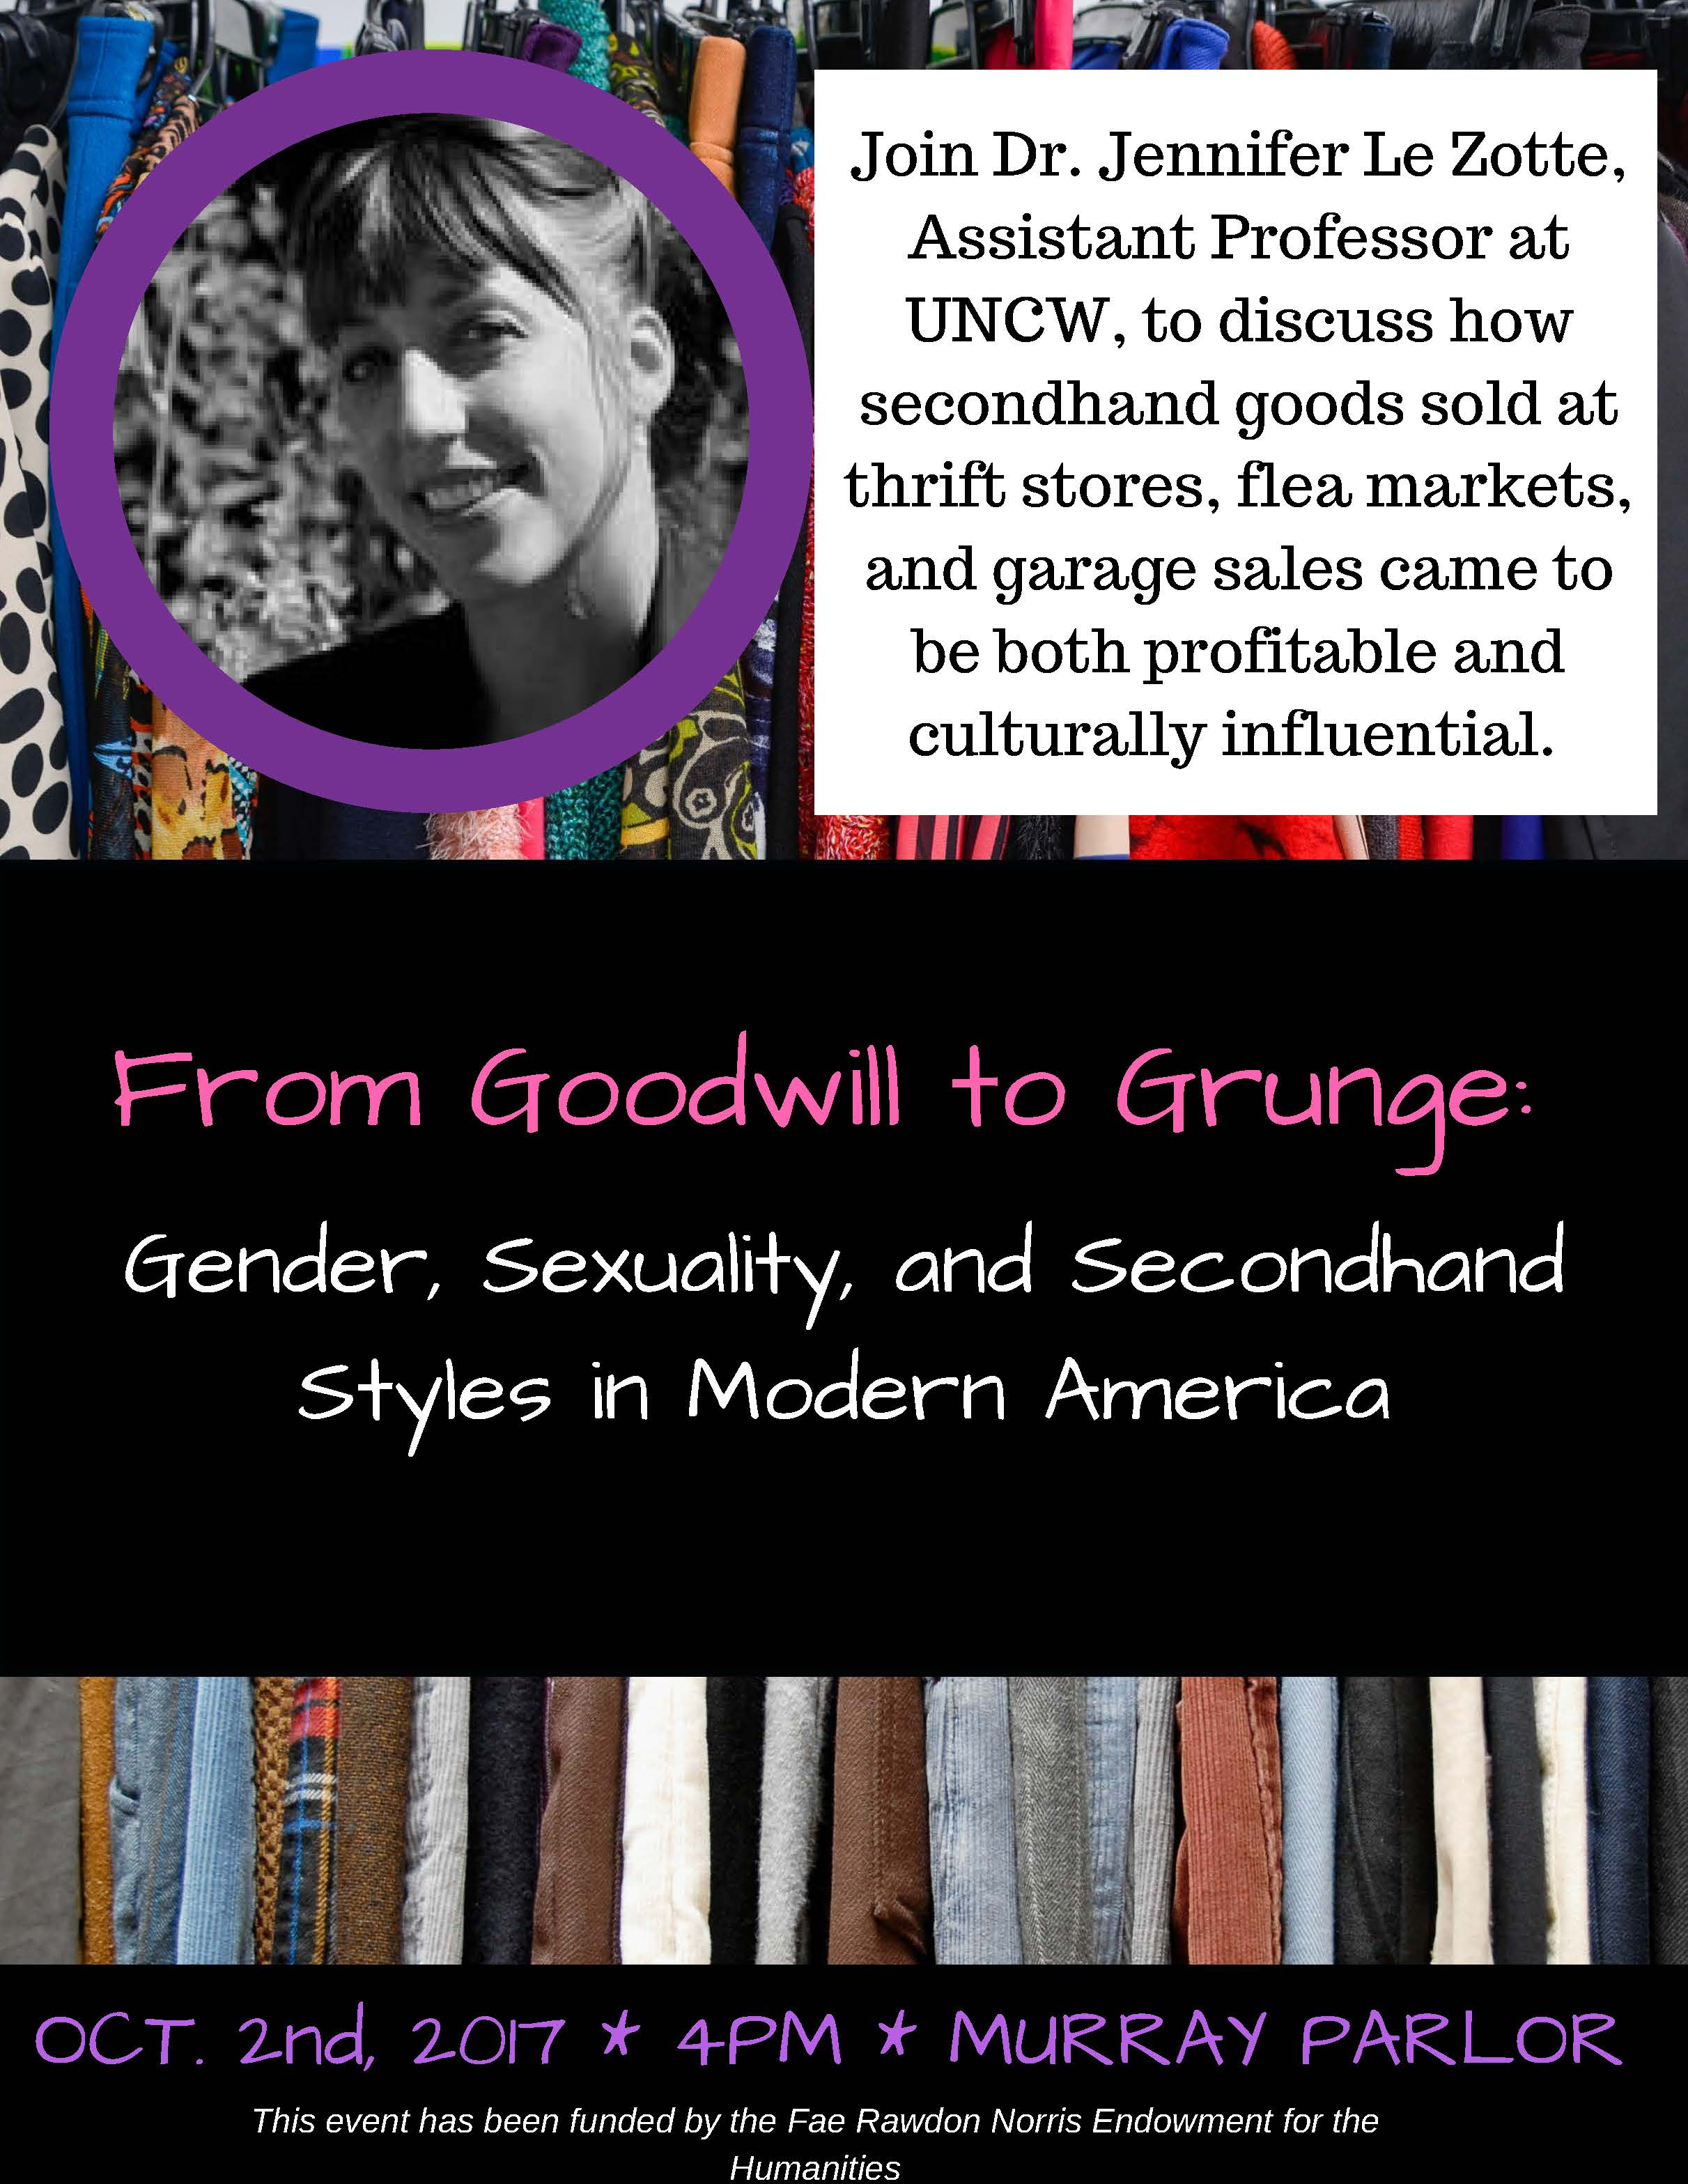 From Goodwill to Grunge Gender Sexuality and Secondhand Styles in Modern America 3